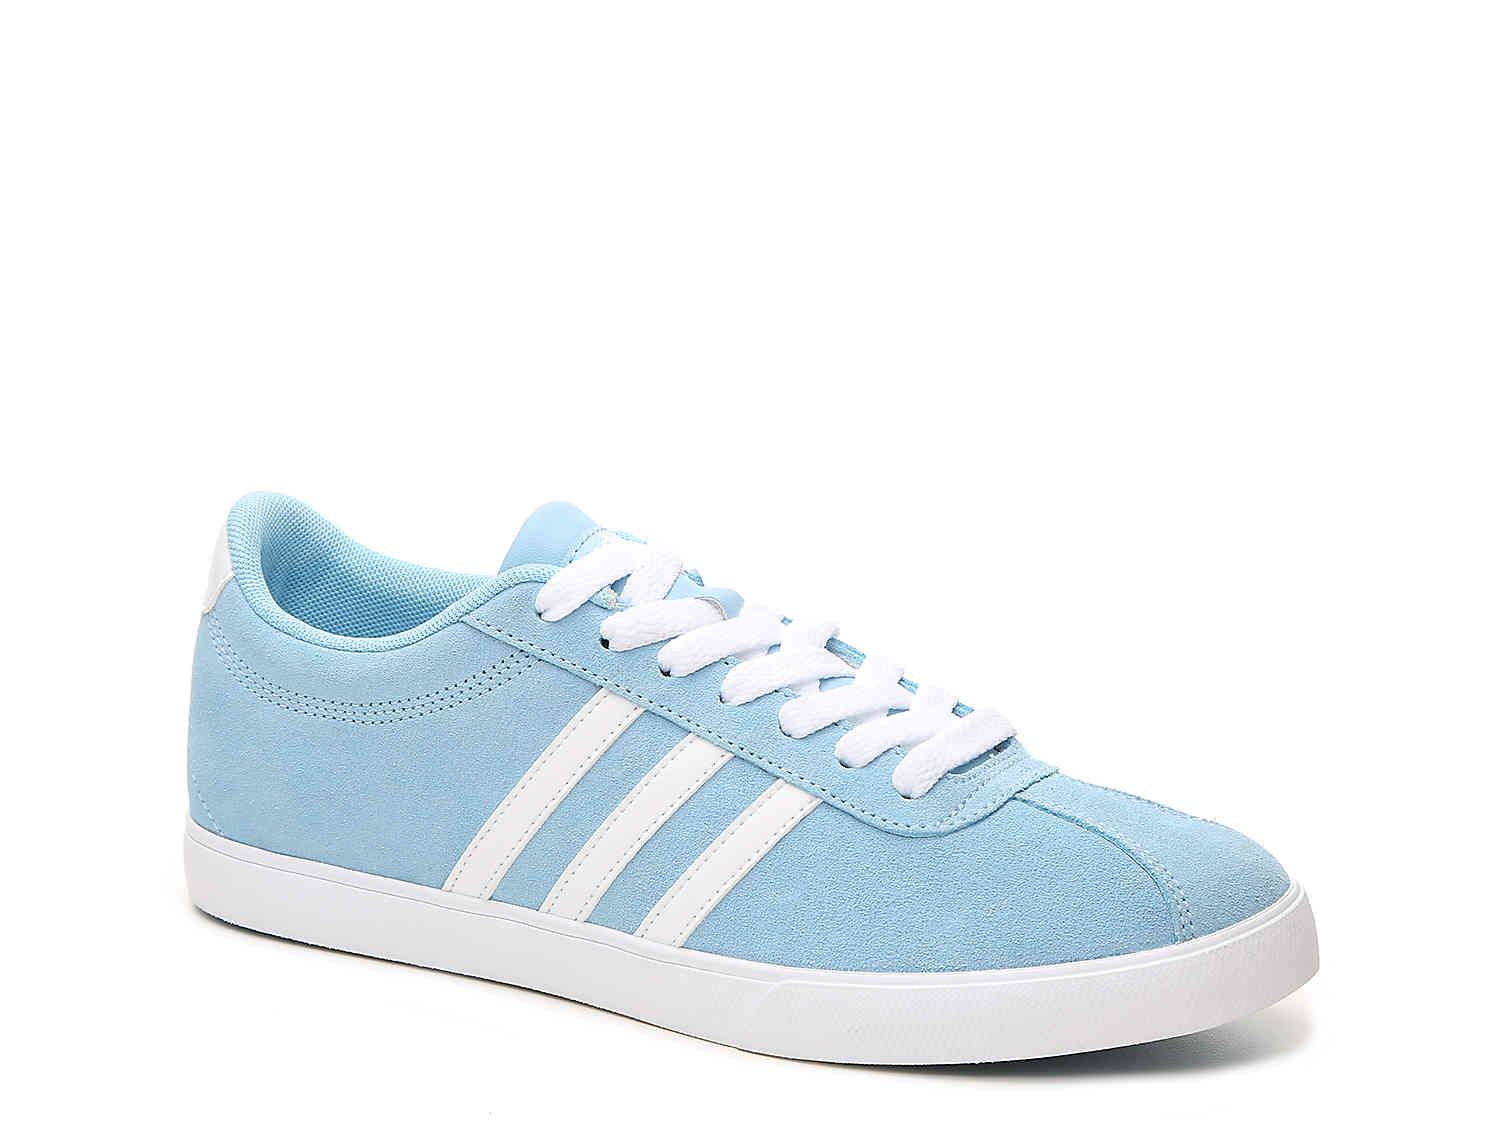 NEO Courtset Sneaker Womens | Blue shoes women, Adidas